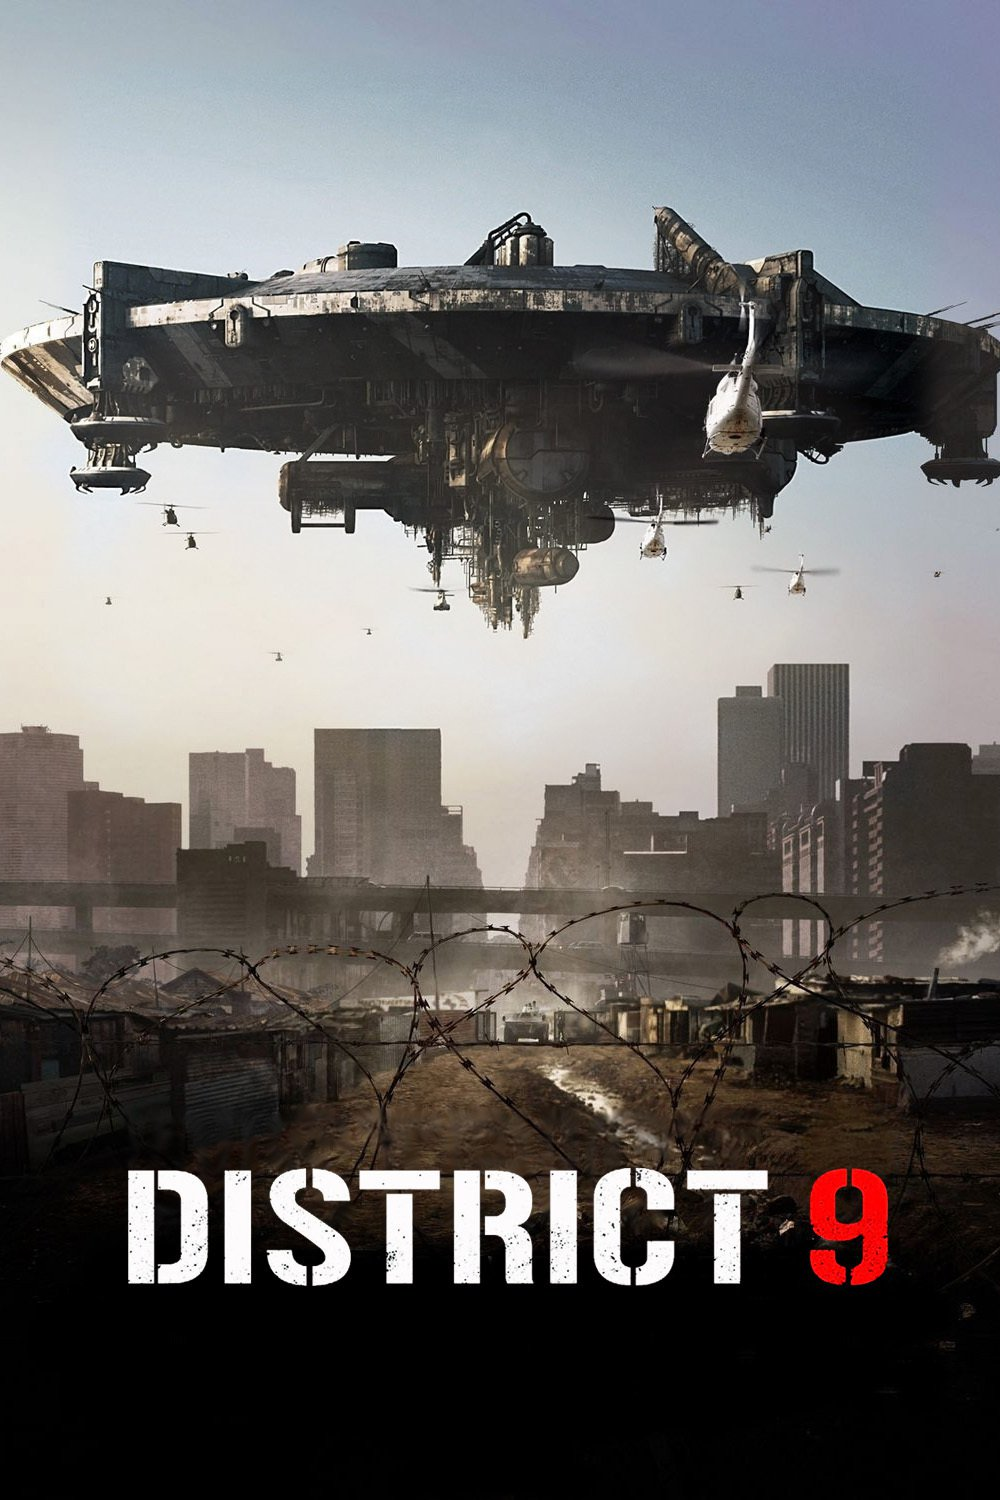 DISTRICT 9 (2009) MOVIE TAMIL DUBBED HD